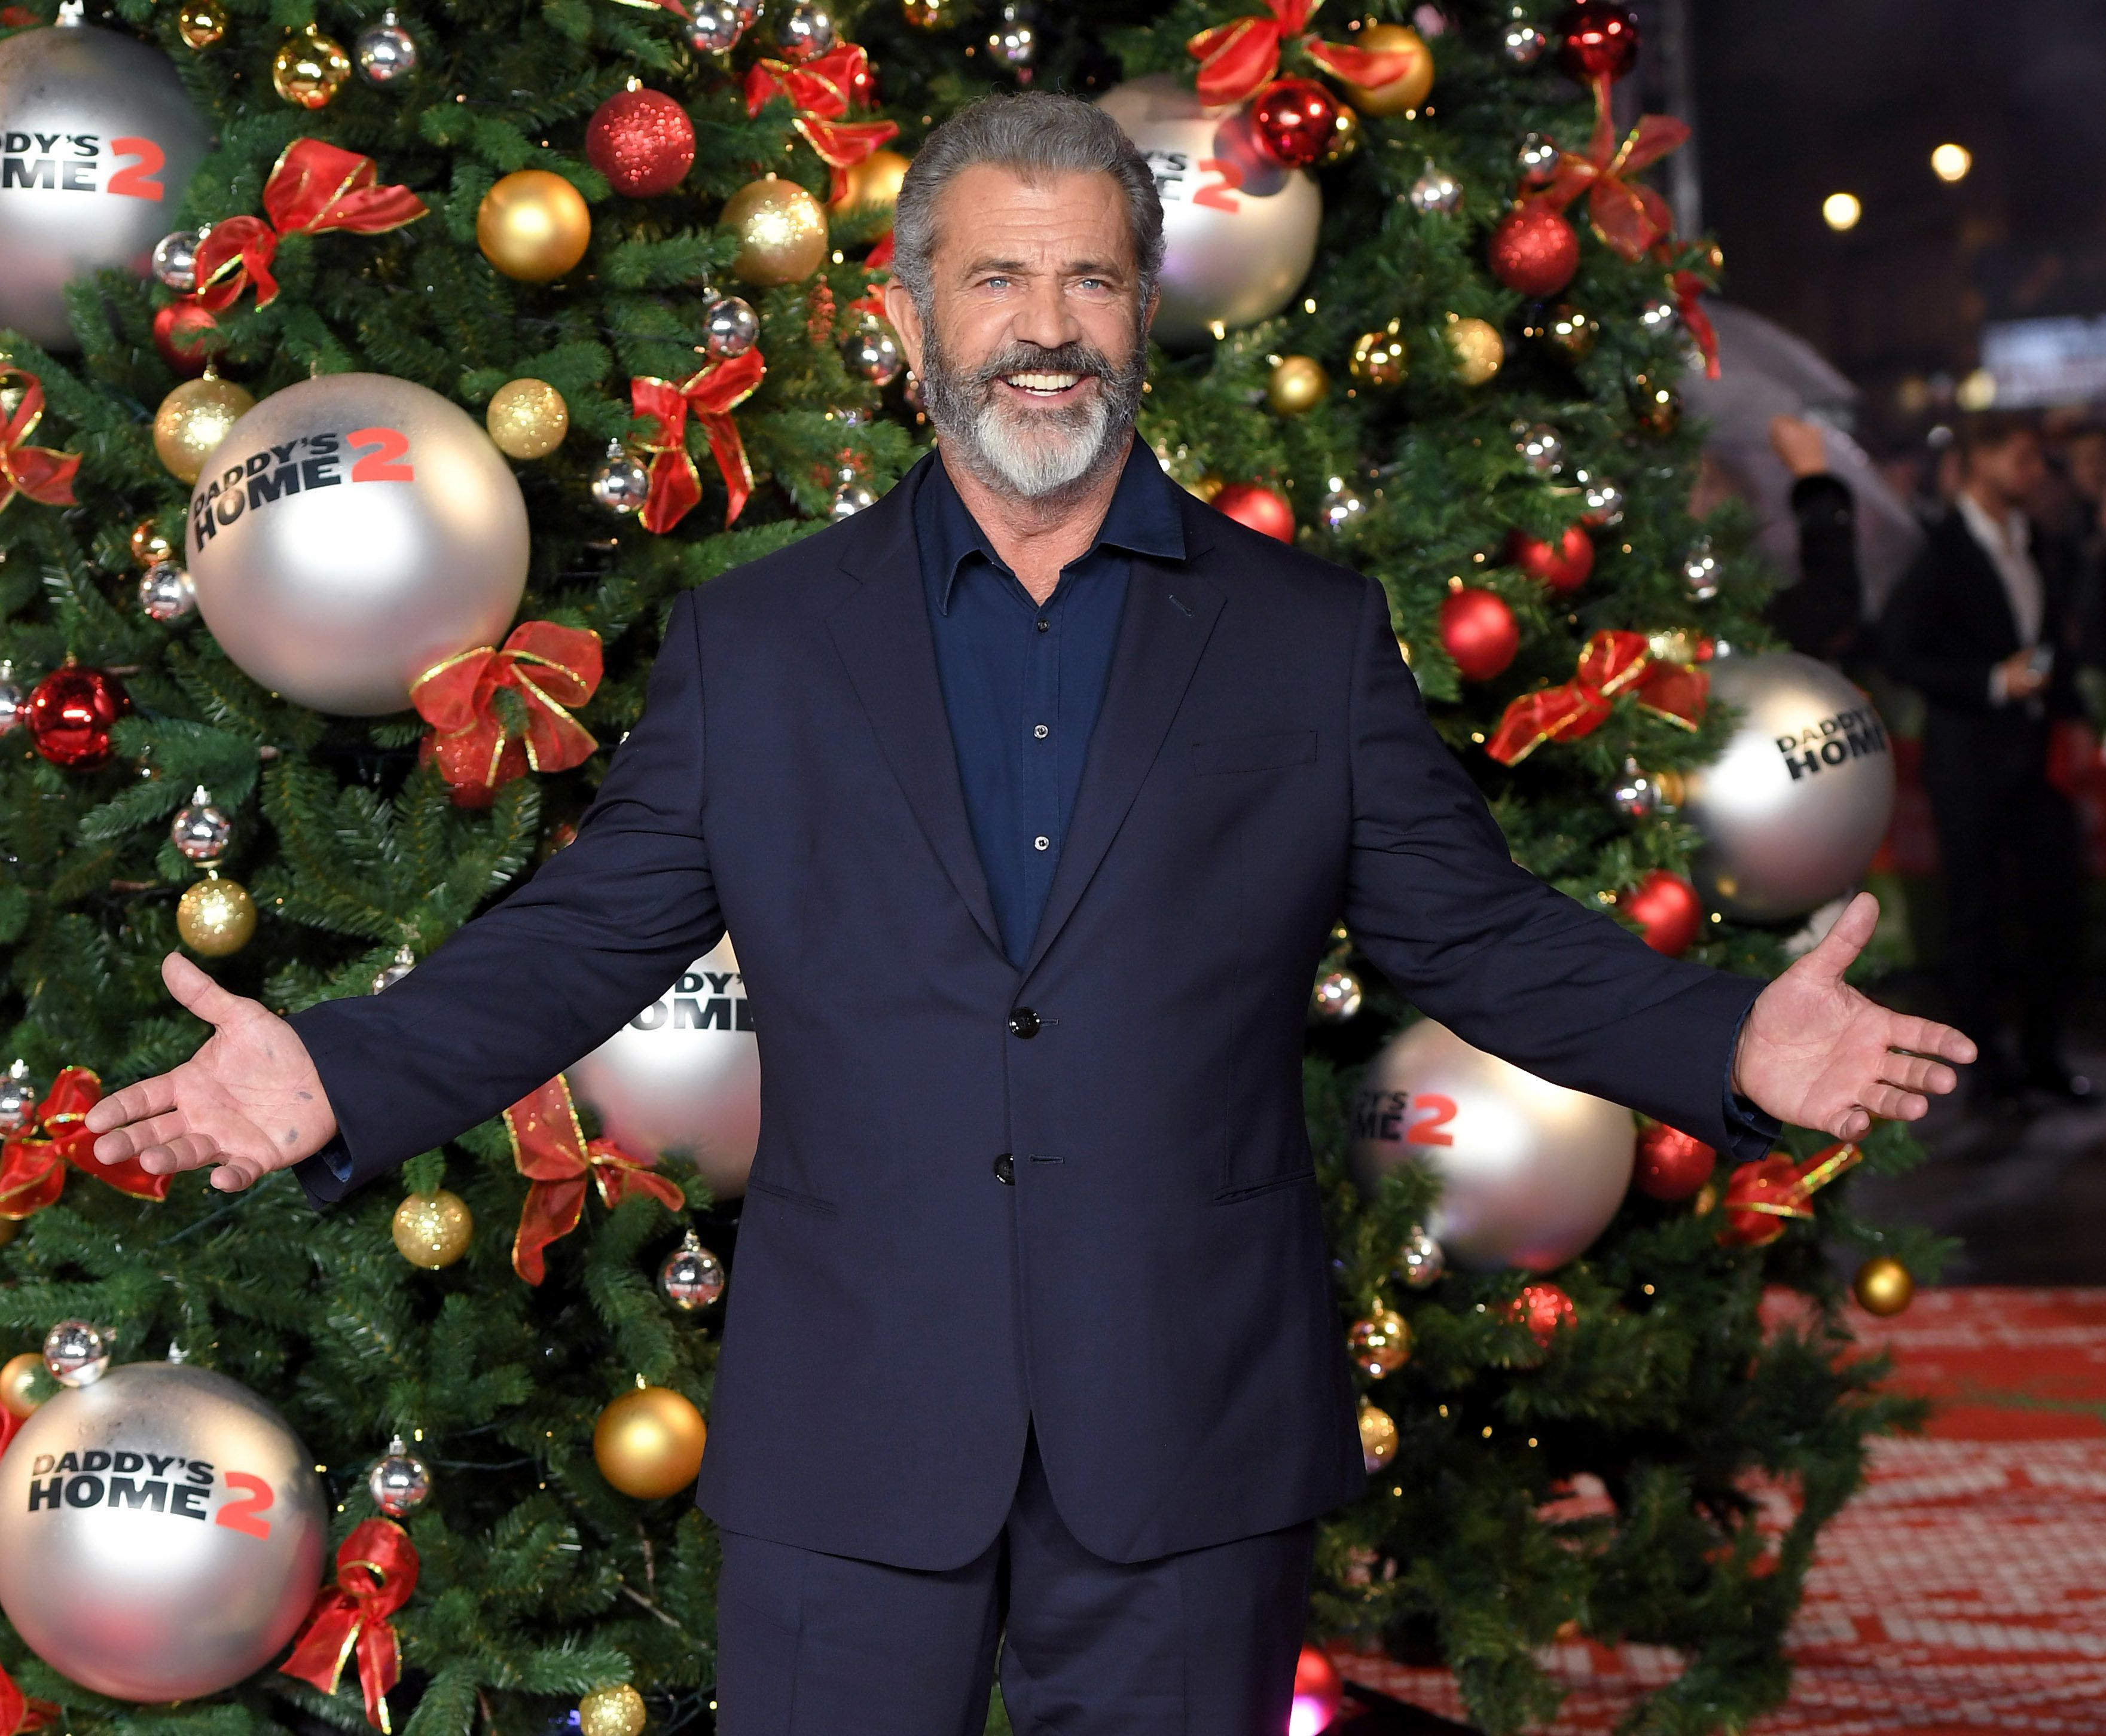 LONDON, ENGLAND - NOVEMBER 16:  Mel Gibson attends the UK Premiere of 'Daddy's Home 2' at Vue West End on November 16, 2017 in London, England.  (Photo by Karwai Tang/WireImage)